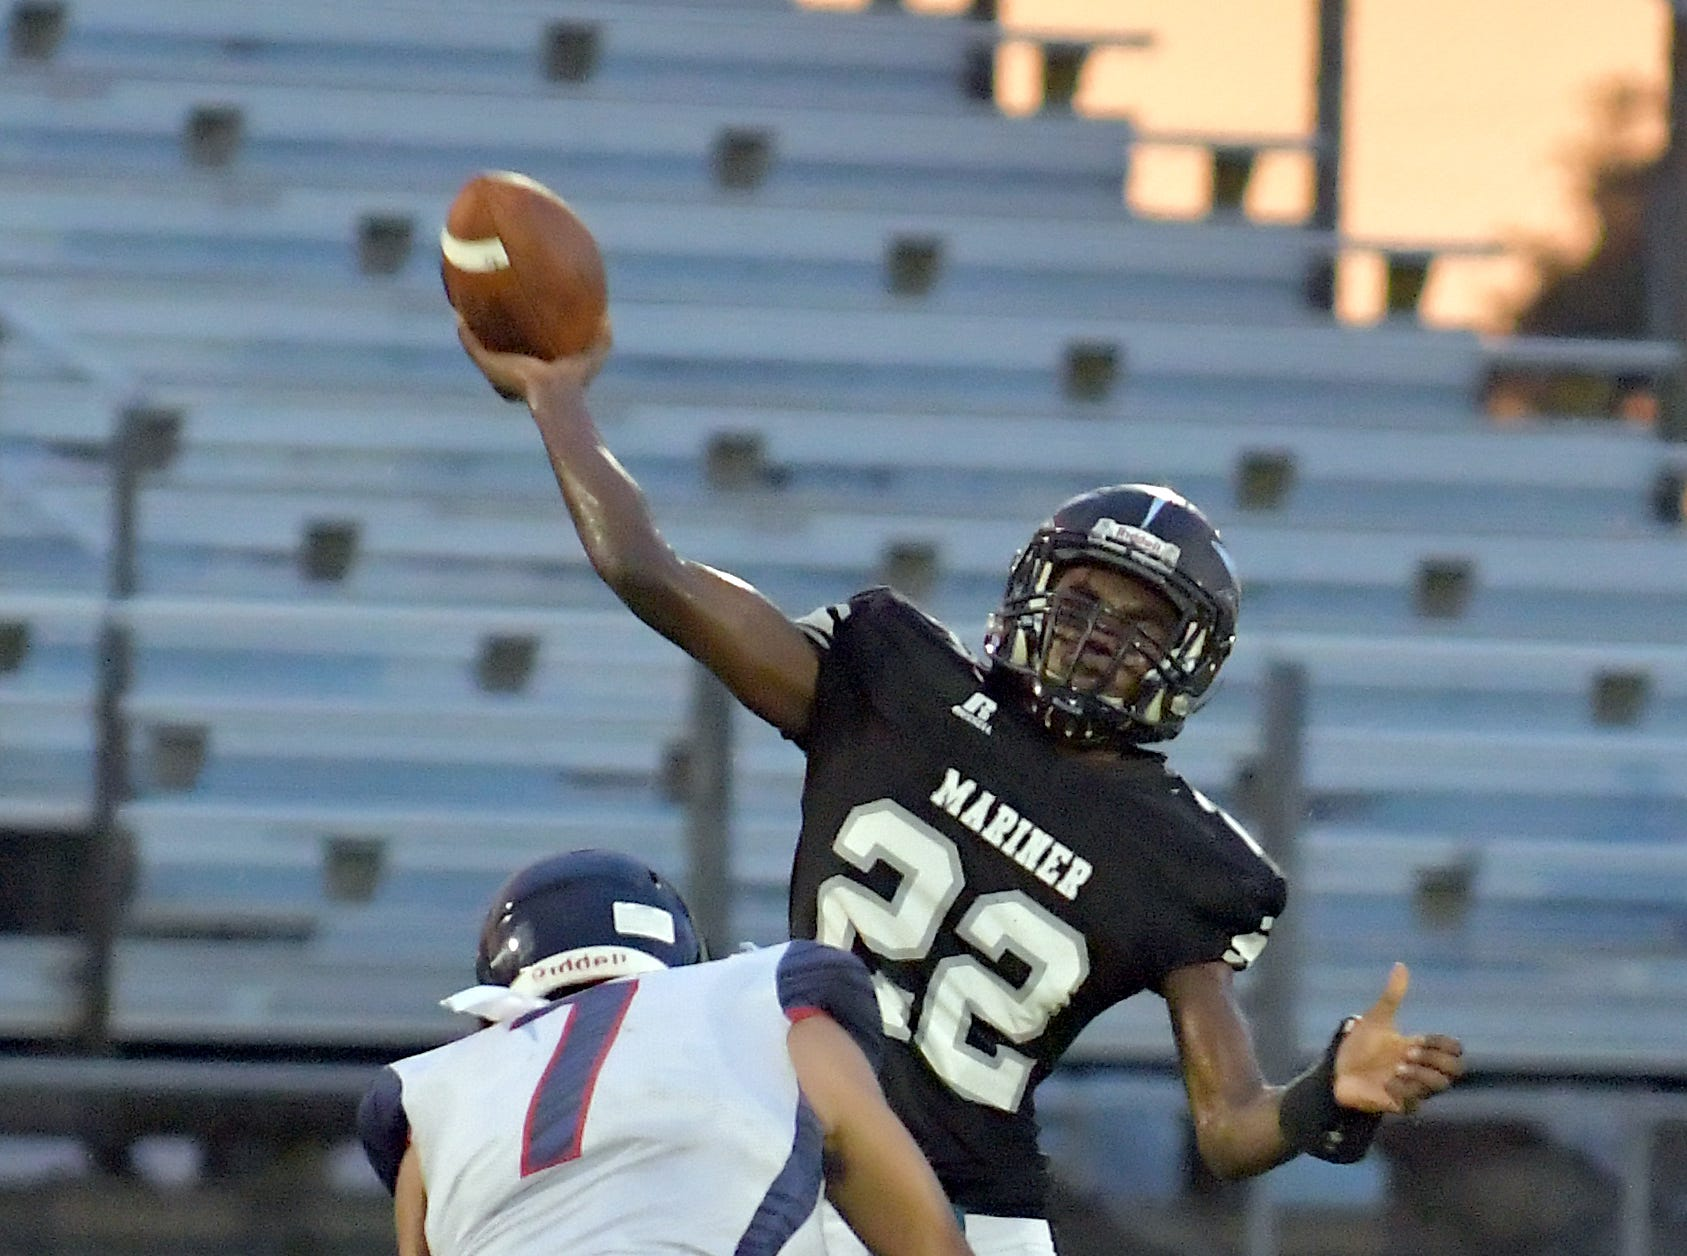 Mariner High School Rashawn Hunter (22) throws a pass over a defender their game with Estero High School in Cape Coral Monday, Aug. 27, 2018.